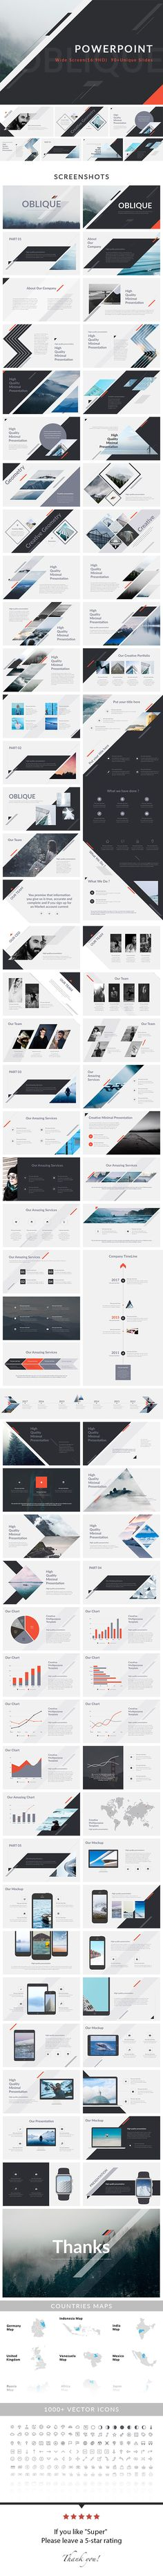 84 best free presentation templates images on pinterest